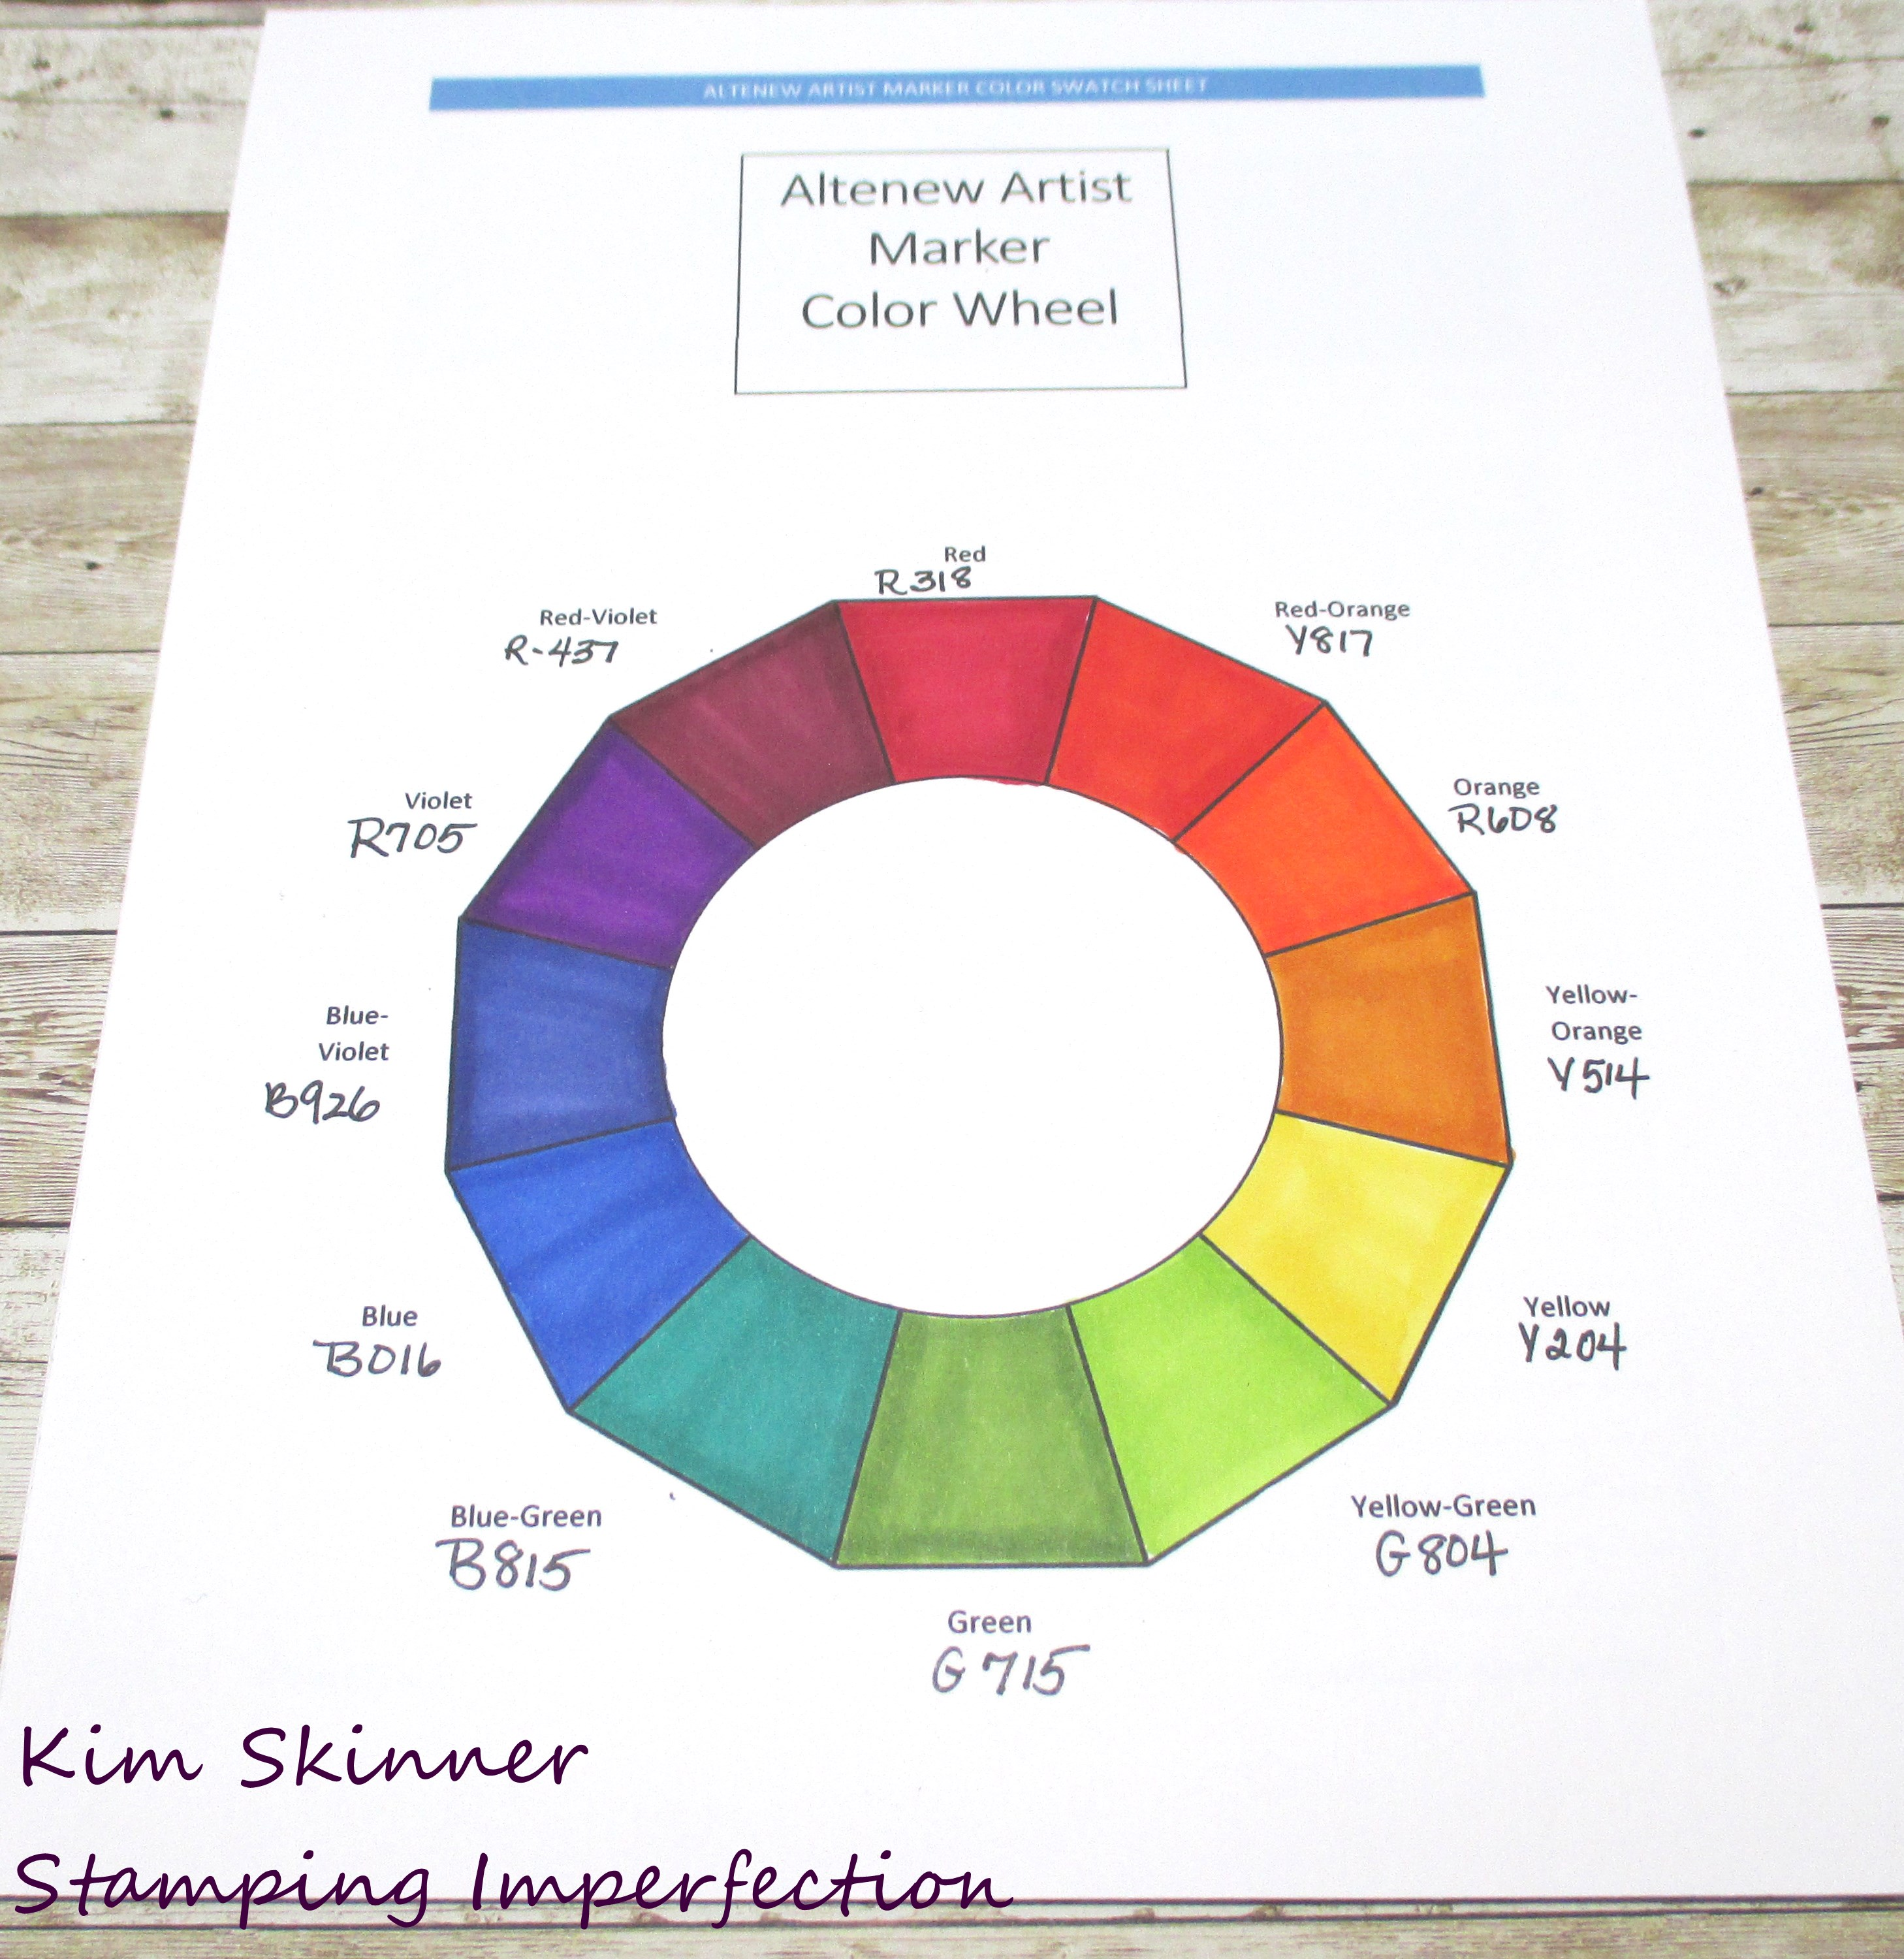 Free Printable Color Wheel Color Theory Notes Altenew Artist Marker Swatch Printable Stamping Imperfection